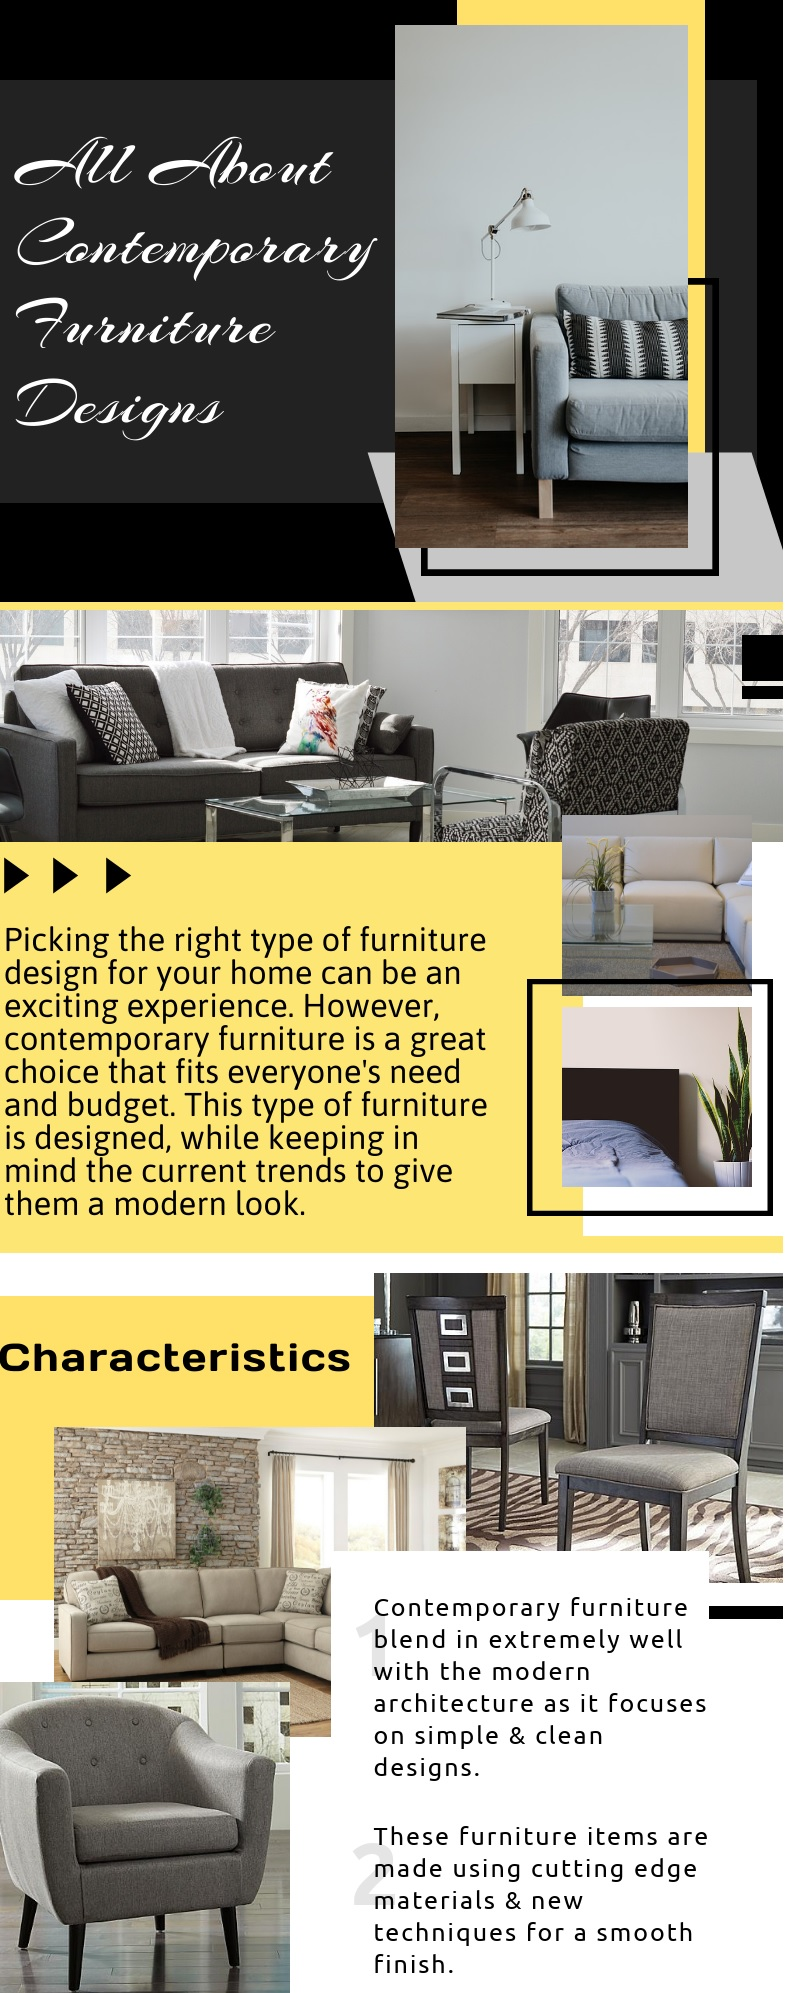 All About Contemporary Furniture Design Killeenfurniture